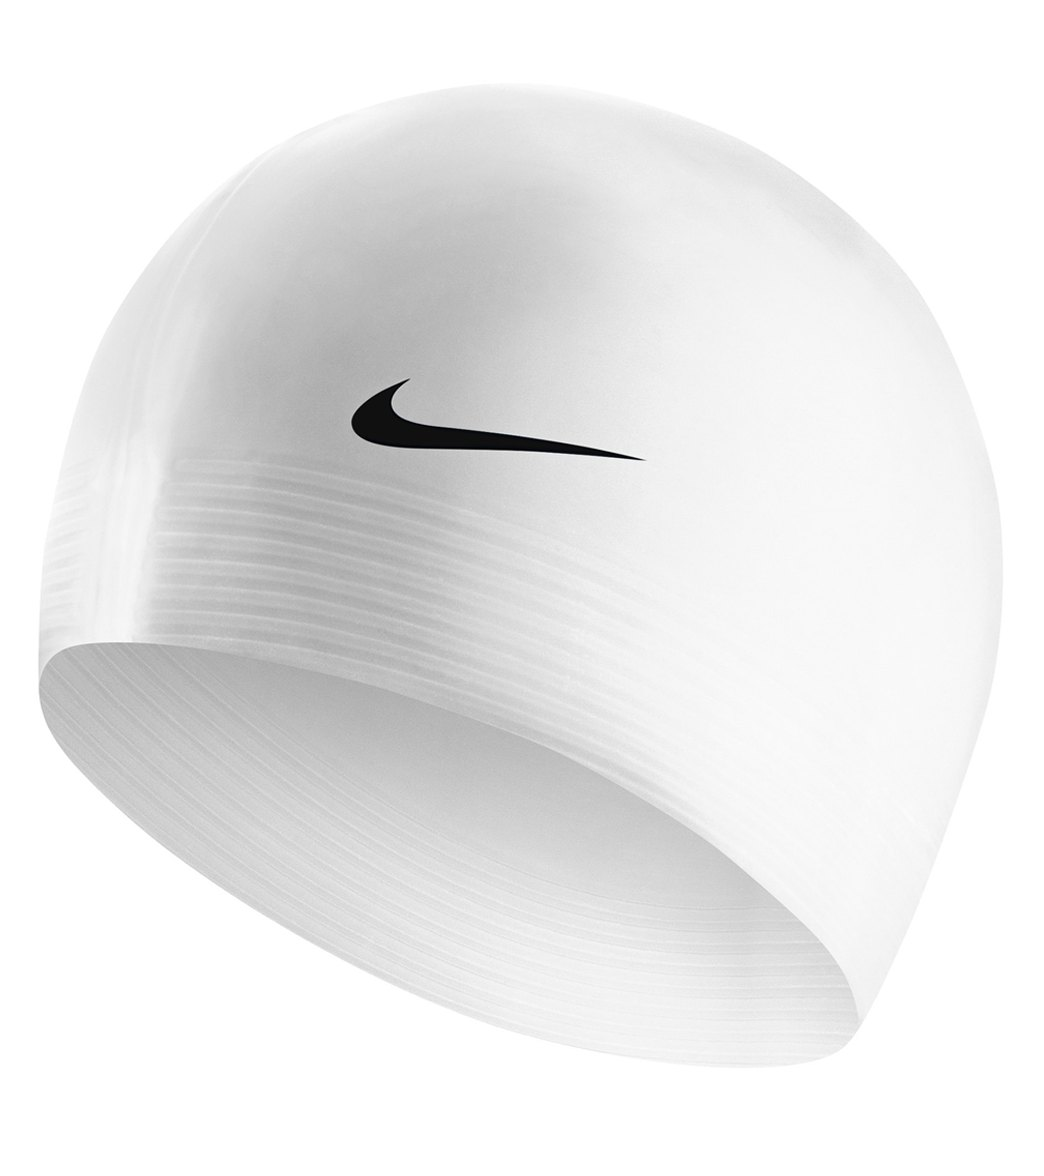 a0937bf9c31 Nike Swim Latex Swim Cap at SwimOutlet.com